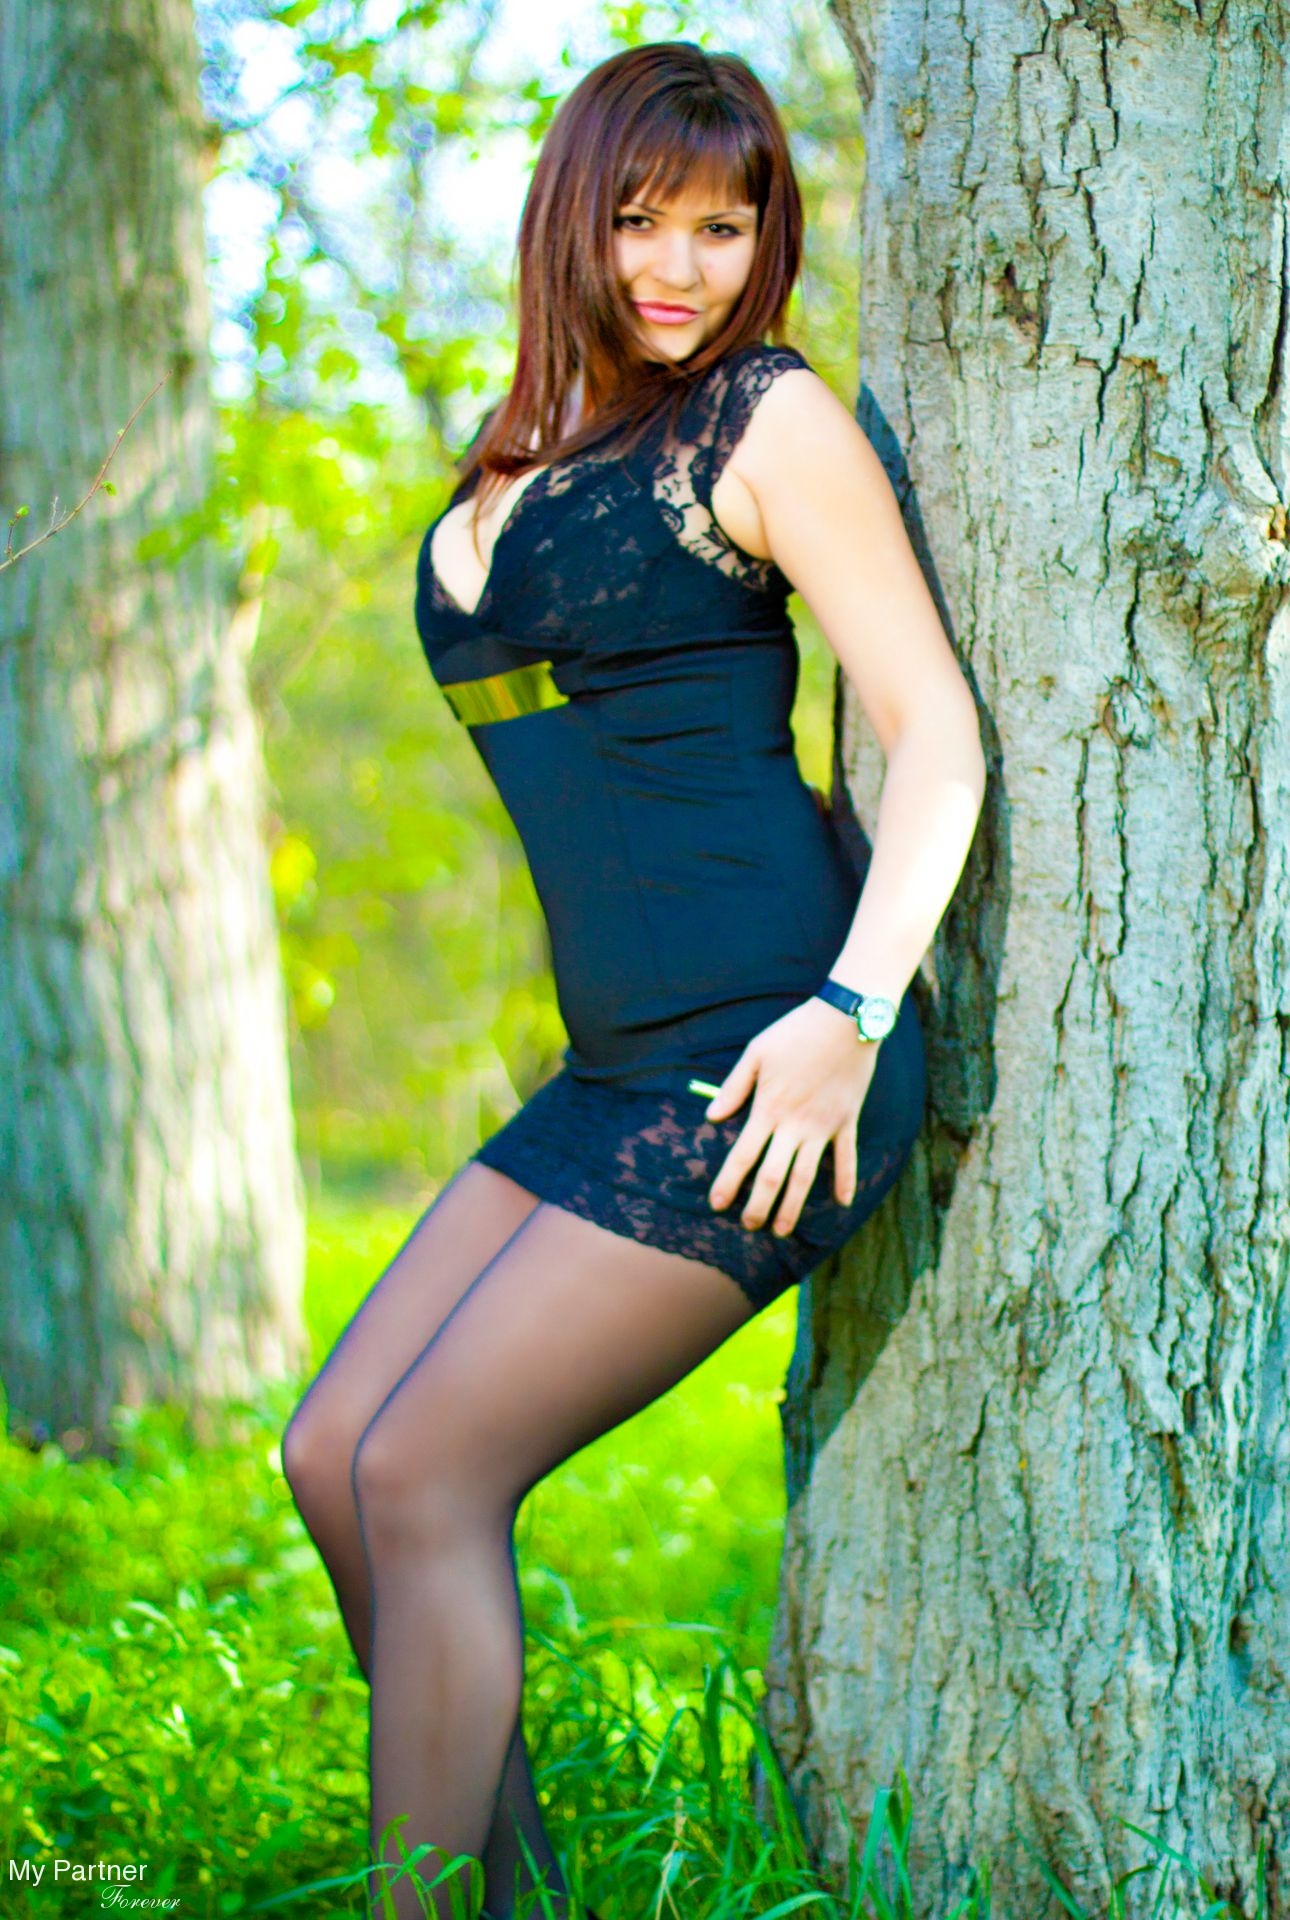 UkraineWomanNet : Meet Single & Beautiful Ukraine Woman